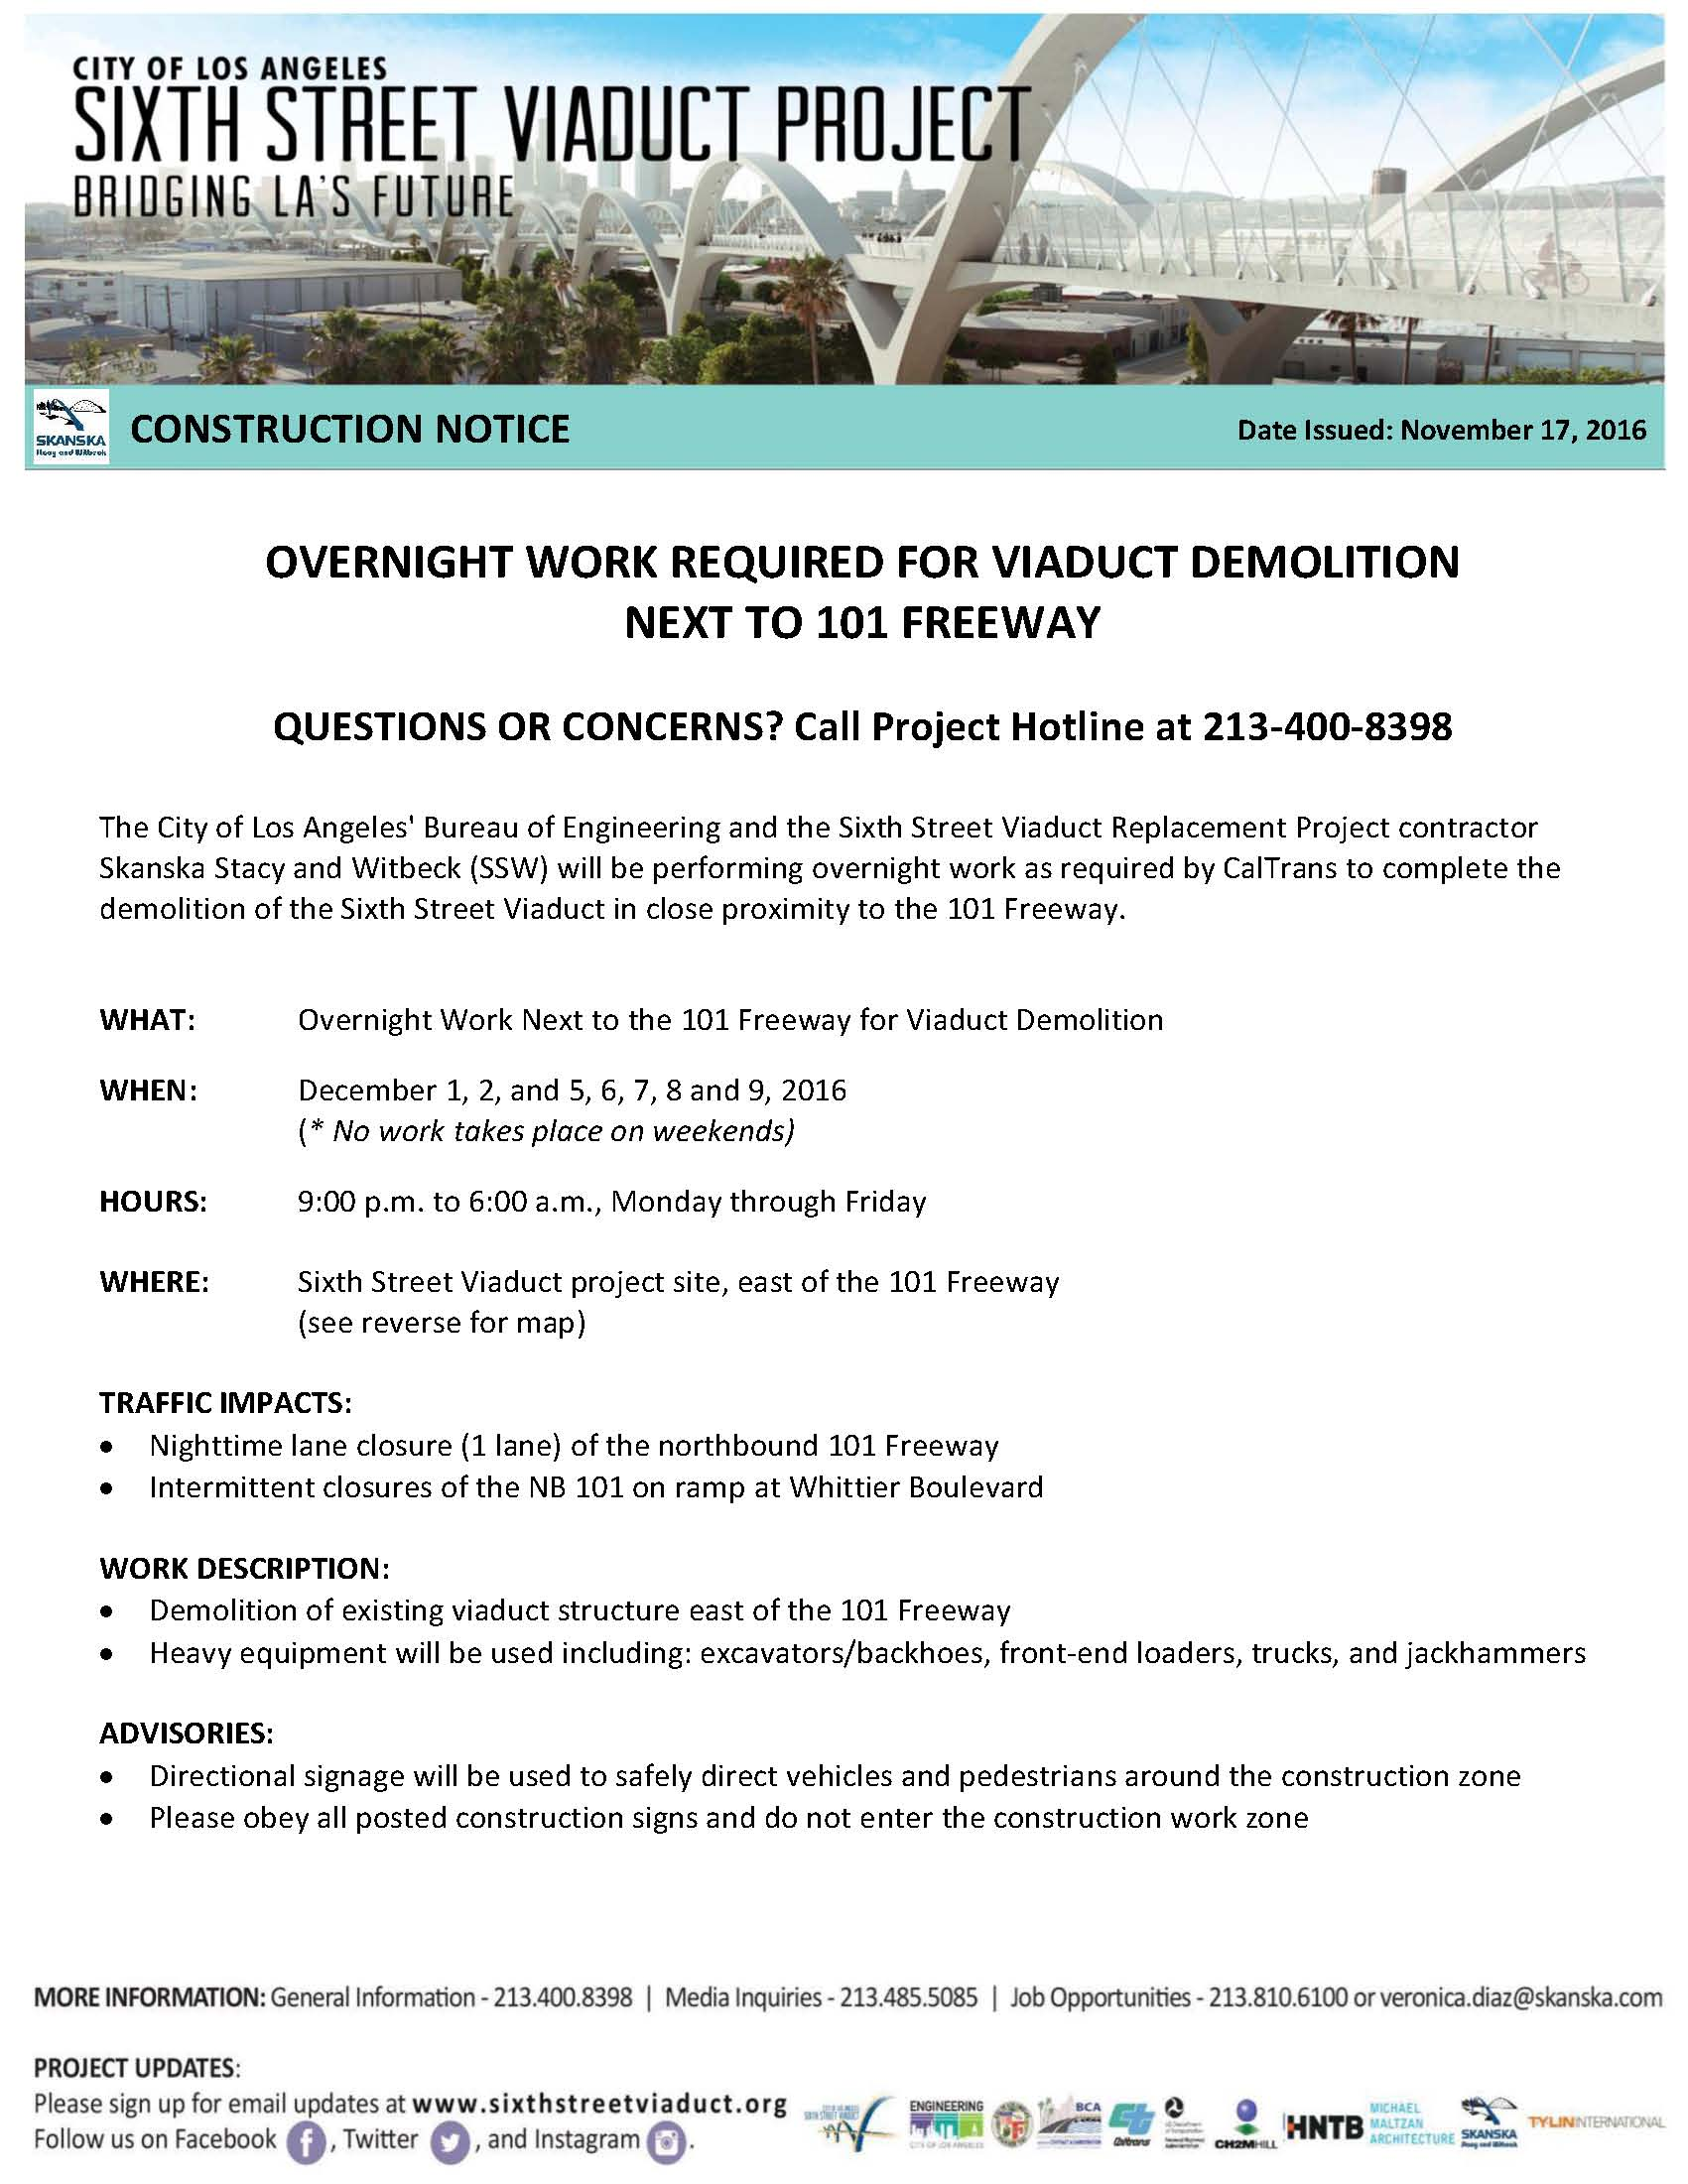 2016-11-16__SSW_Constrction_Notice_-_Night_Work_for_Demolition_Near_101_Fwy_Page_1.jpg